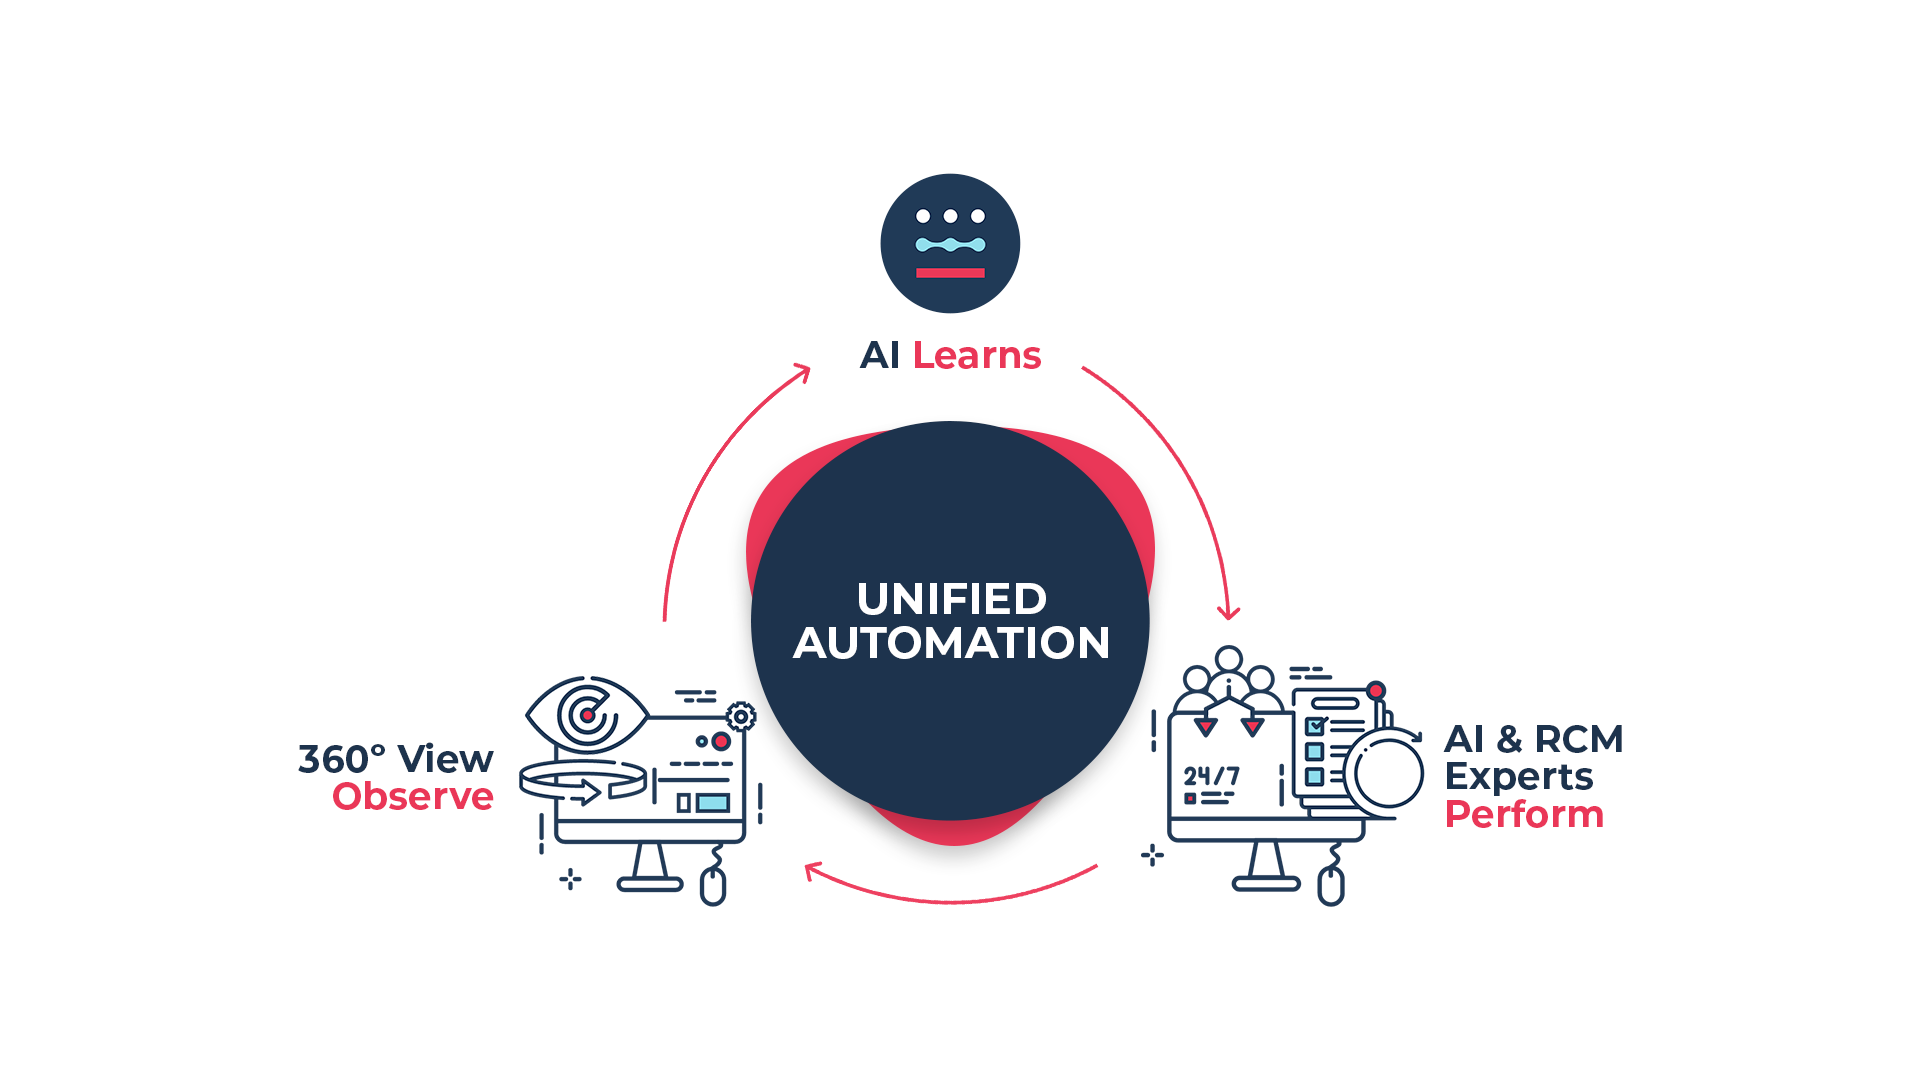 How unified automation works diagram